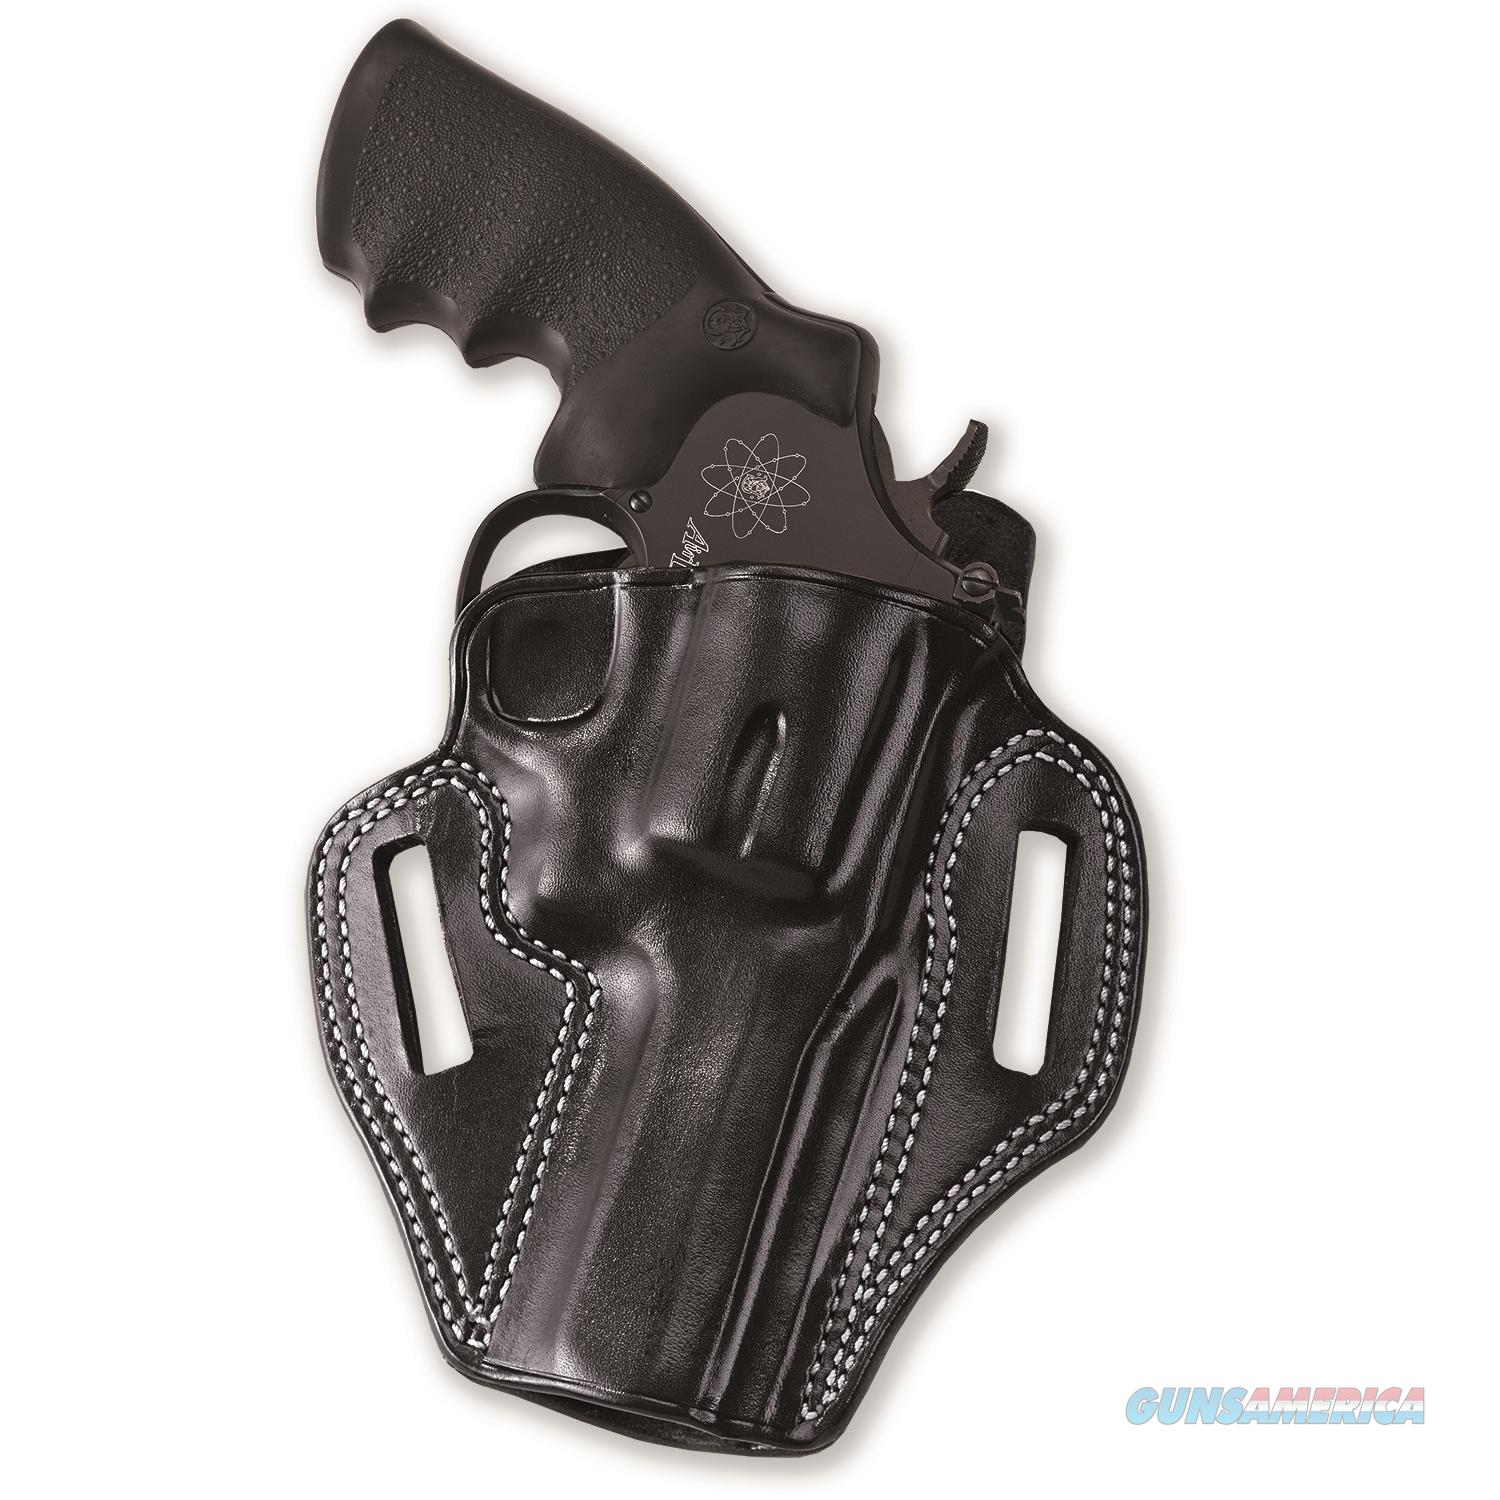 Galco CM158B Combat Master Belt Holster, Black – Smith & Wesson J-Frame, Right Draw  Non-Guns > Holsters and Gunleather > Revolver